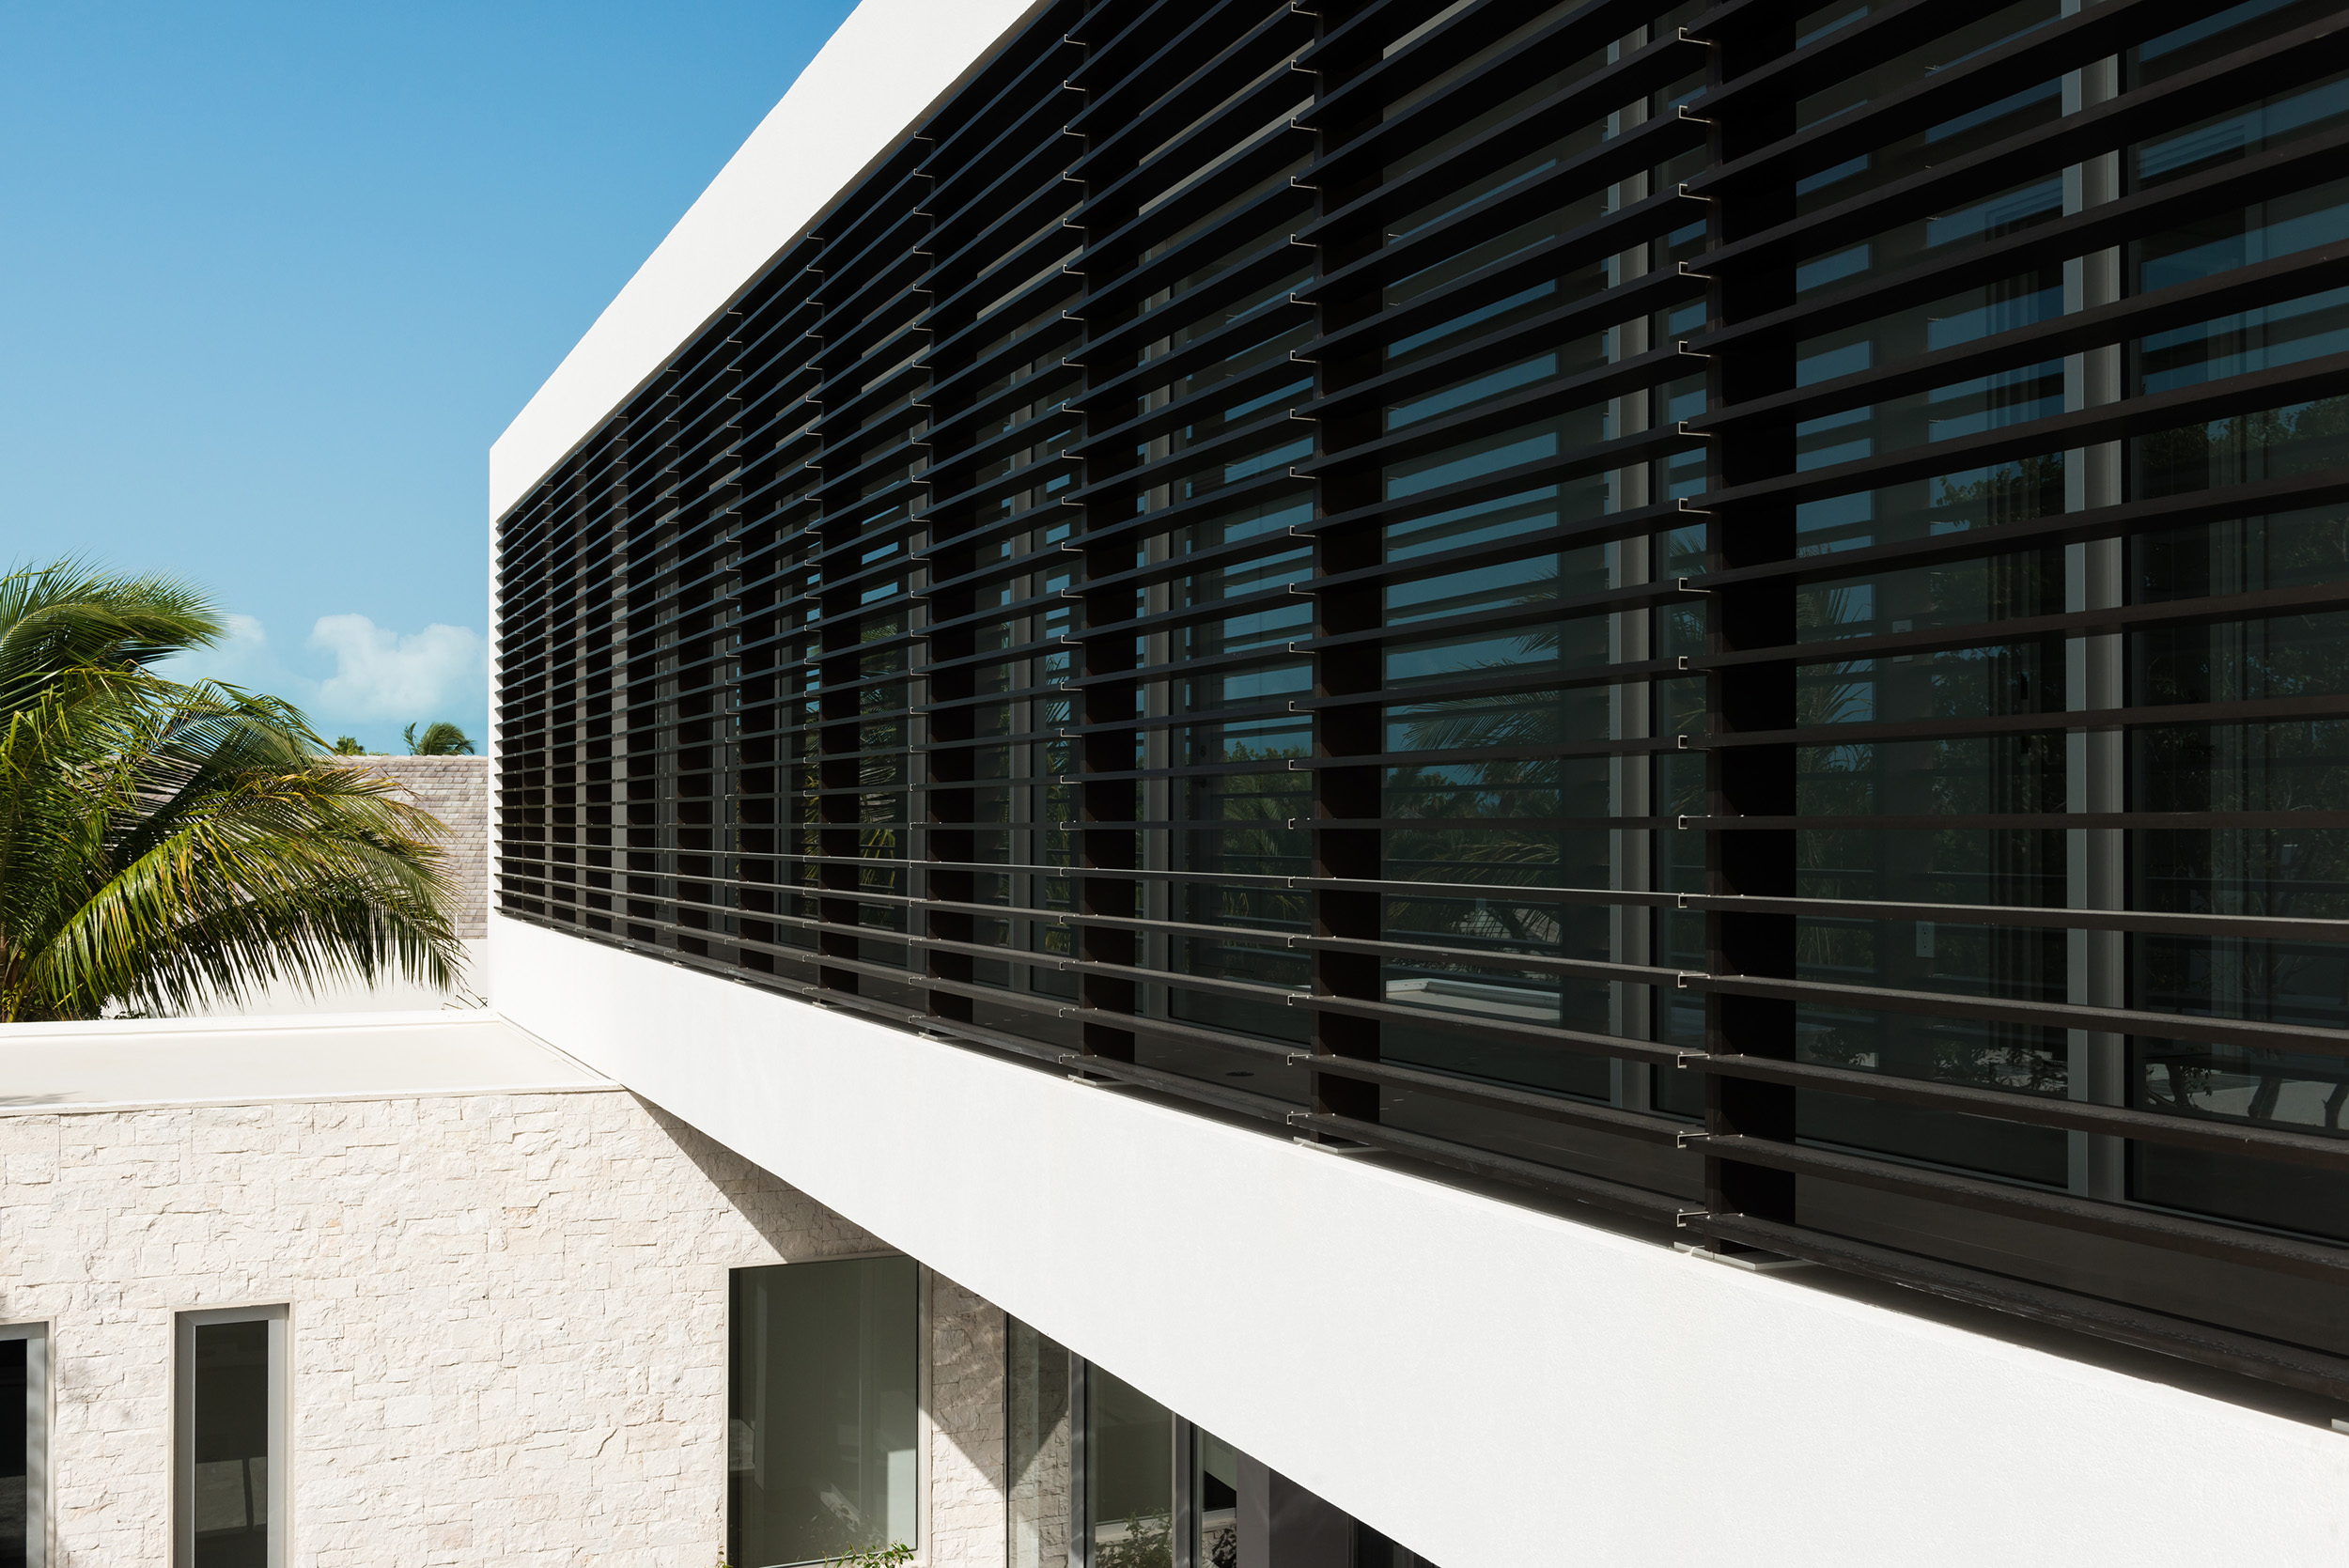 Villa Awa - view of the brise soleil to the front of the villa